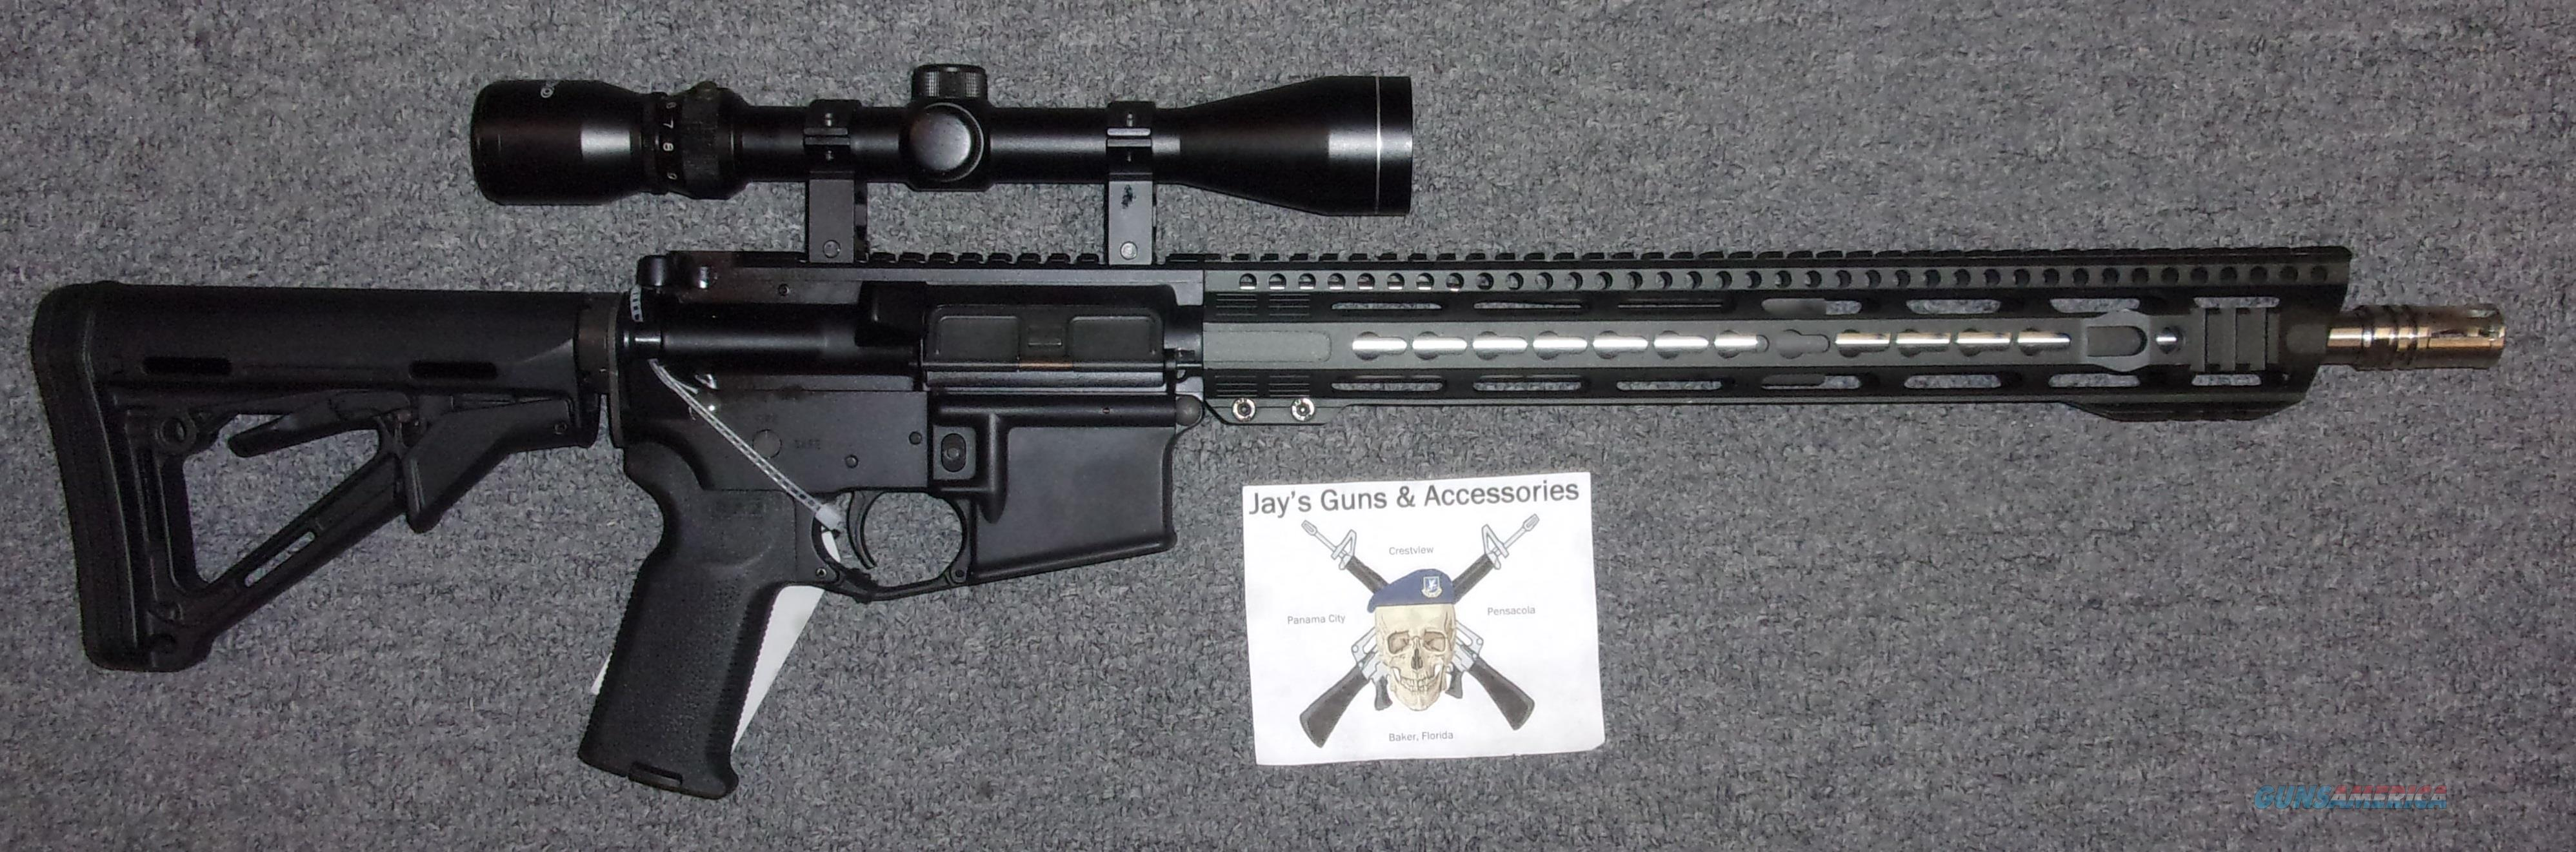 DPMS A-15 w/Scope  Guns > Rifles > DPMS - Panther Arms > Complete Rifle